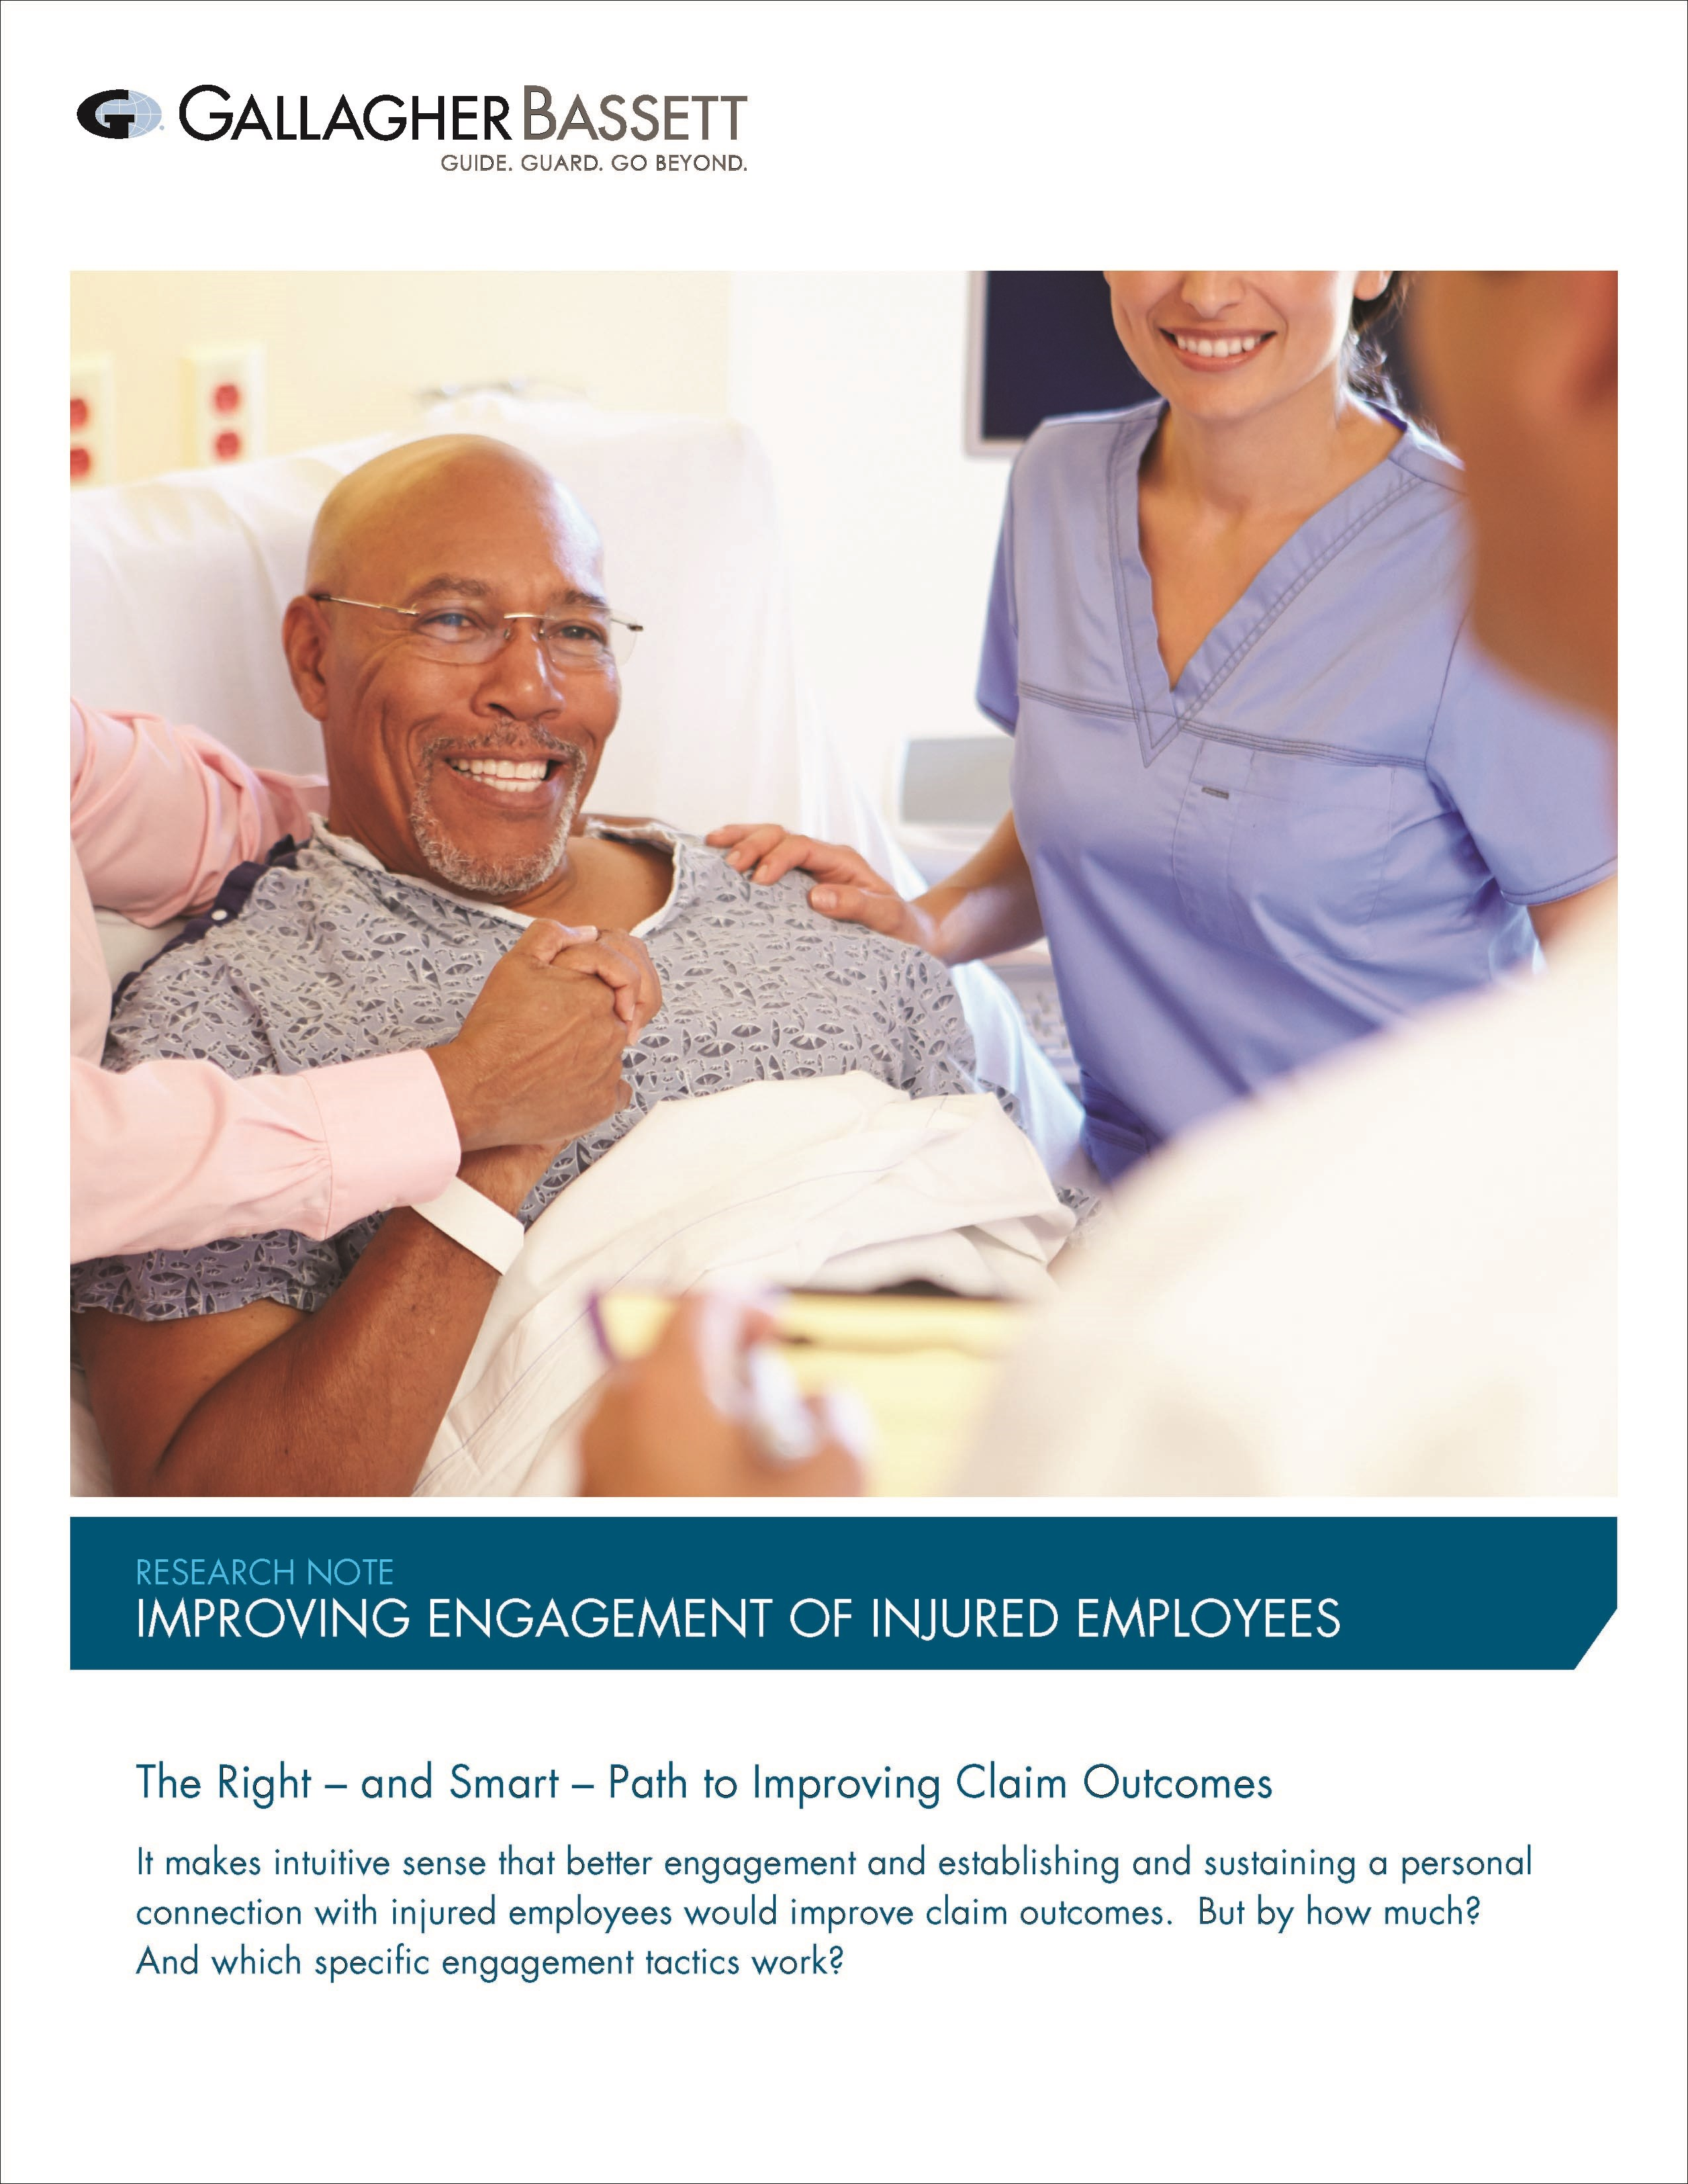 INJURED EMPLOYEE ENGAGEMENT: A PERSONAL TOUCH IMPROVES WORKERS' COMPENSATION CLAIM OUTCOMES